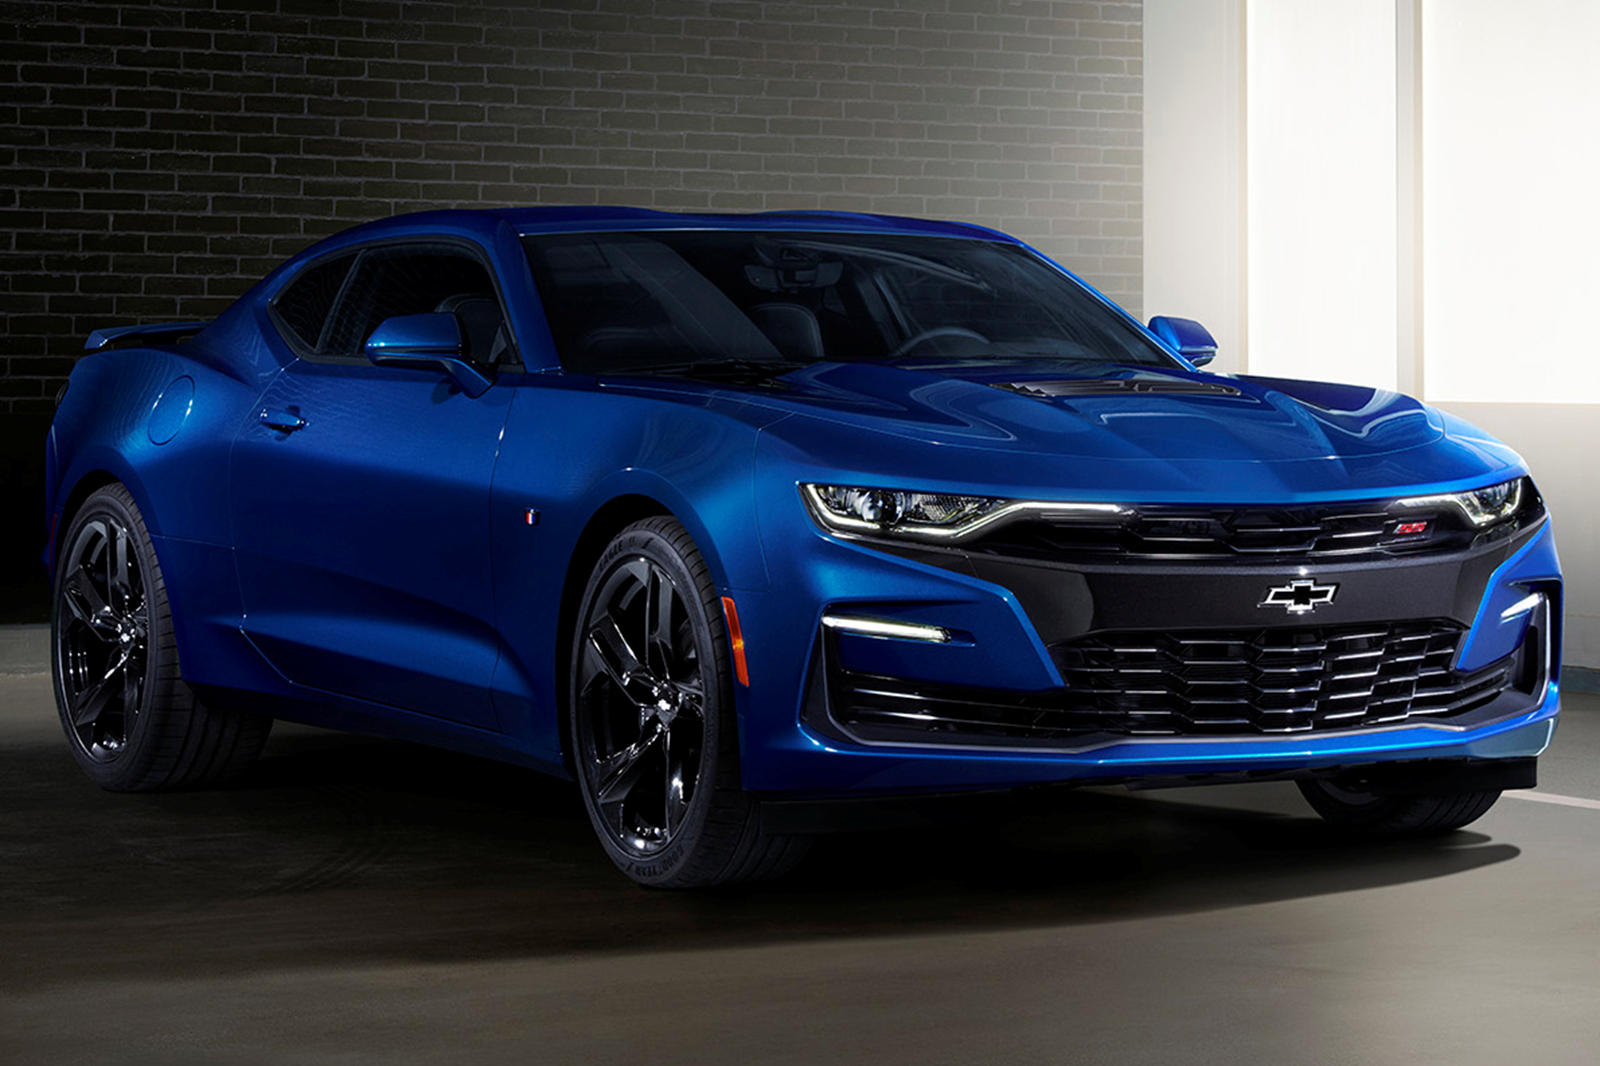 2020 The Camaro Ss Review